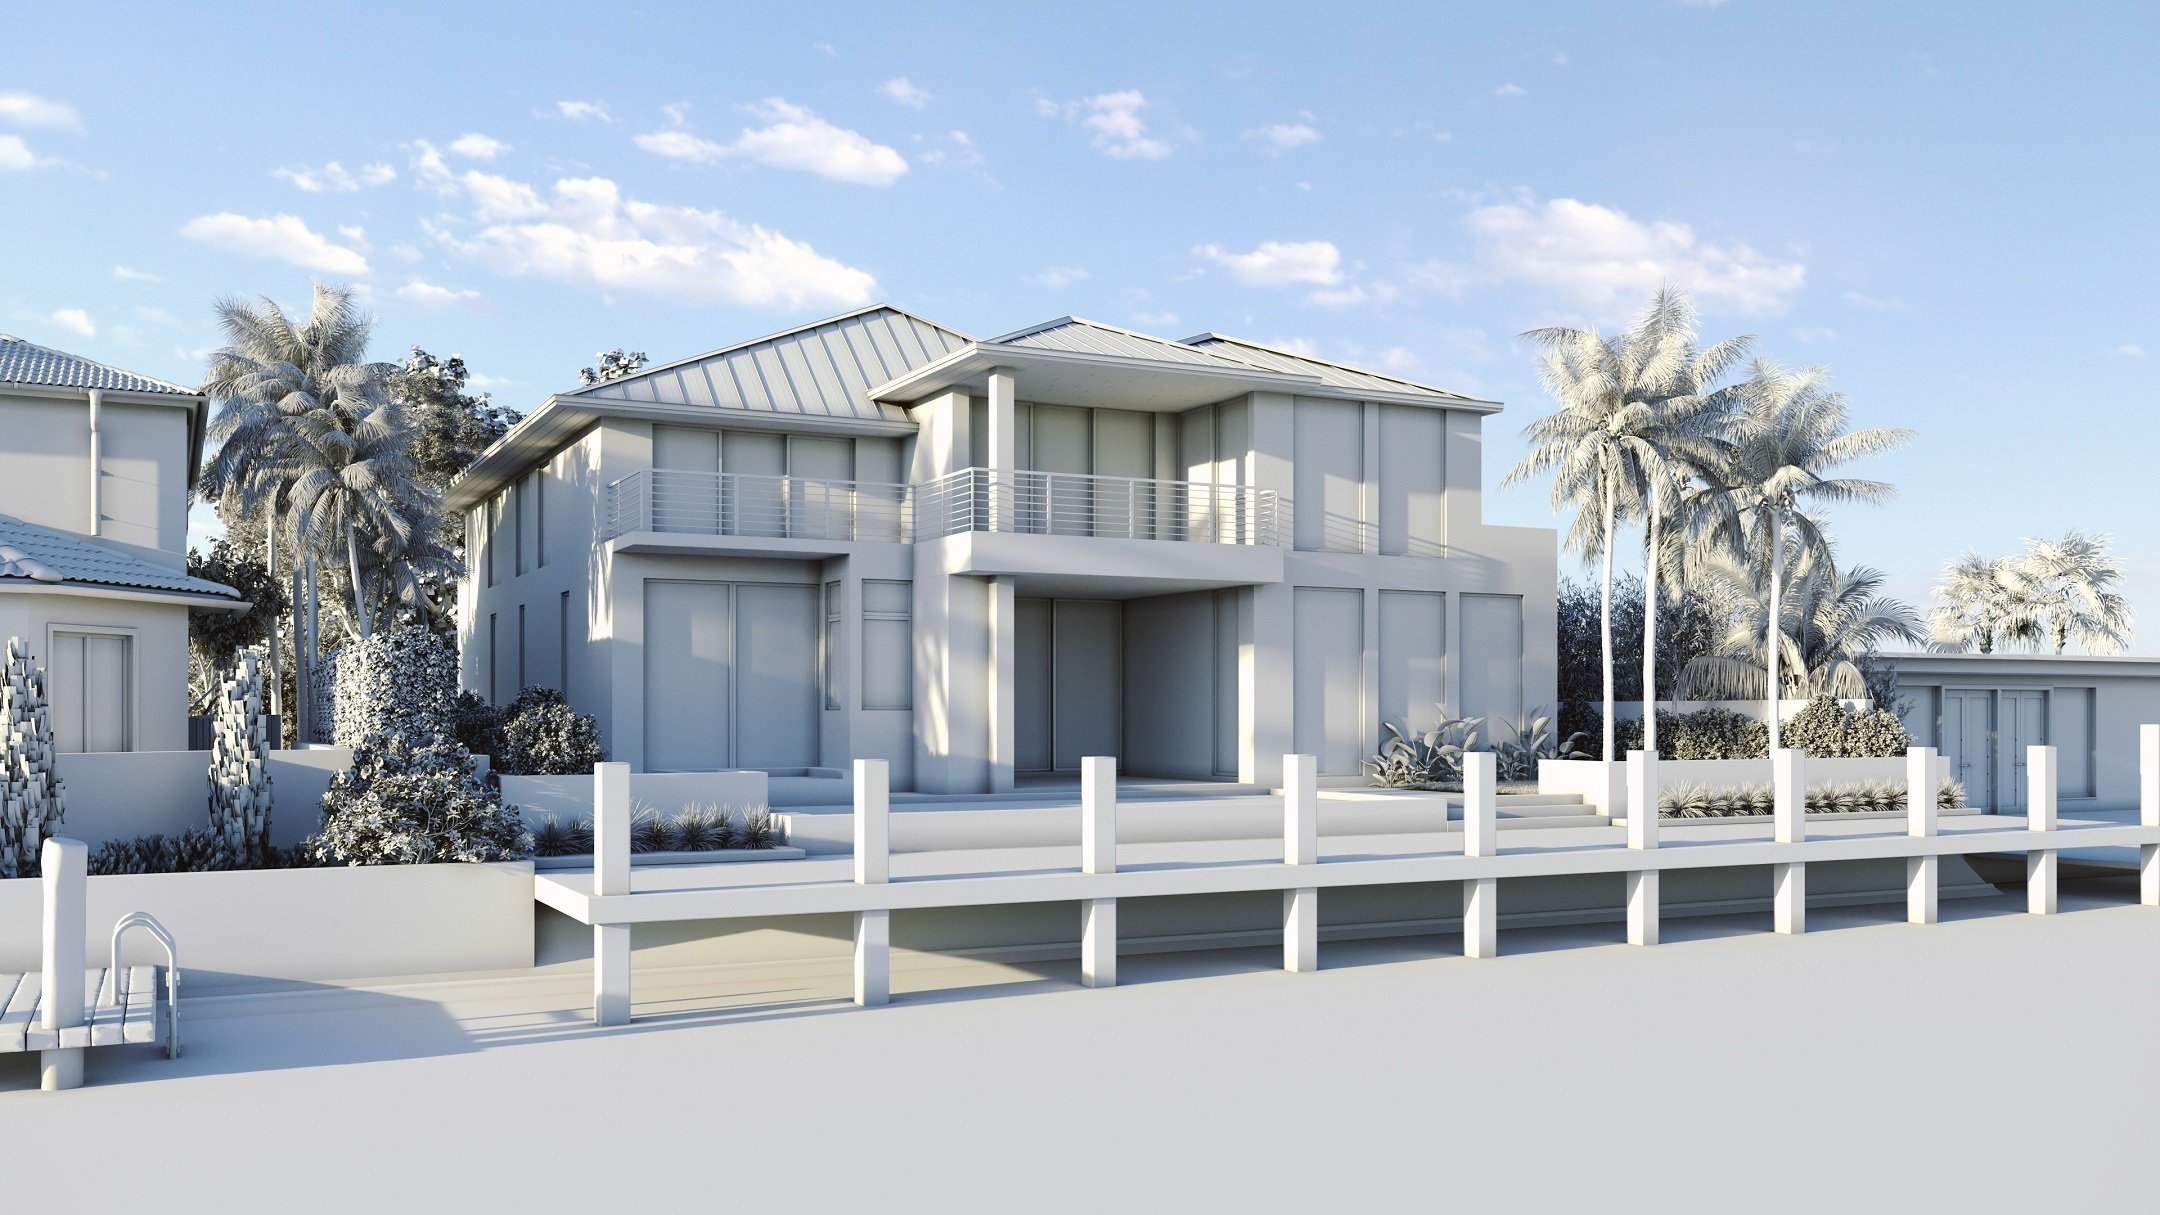 Grayscale 3D Rendering for a Real Estate Property